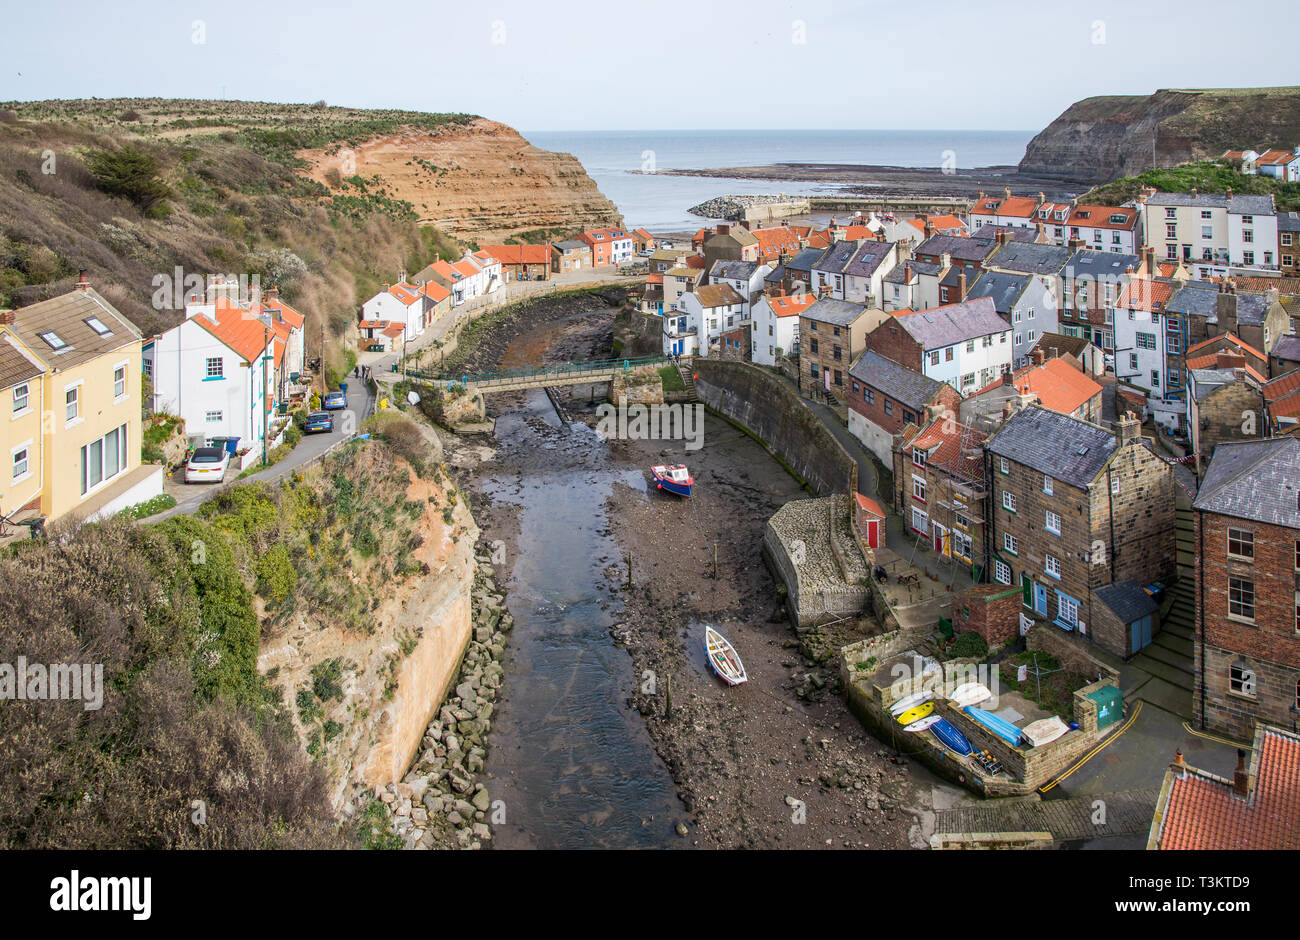 A classic view of Staithes at low tide, Staithes is a a traditional fishing village and seaside resort on the North Yorkshire coast, England UK. - Stock Image